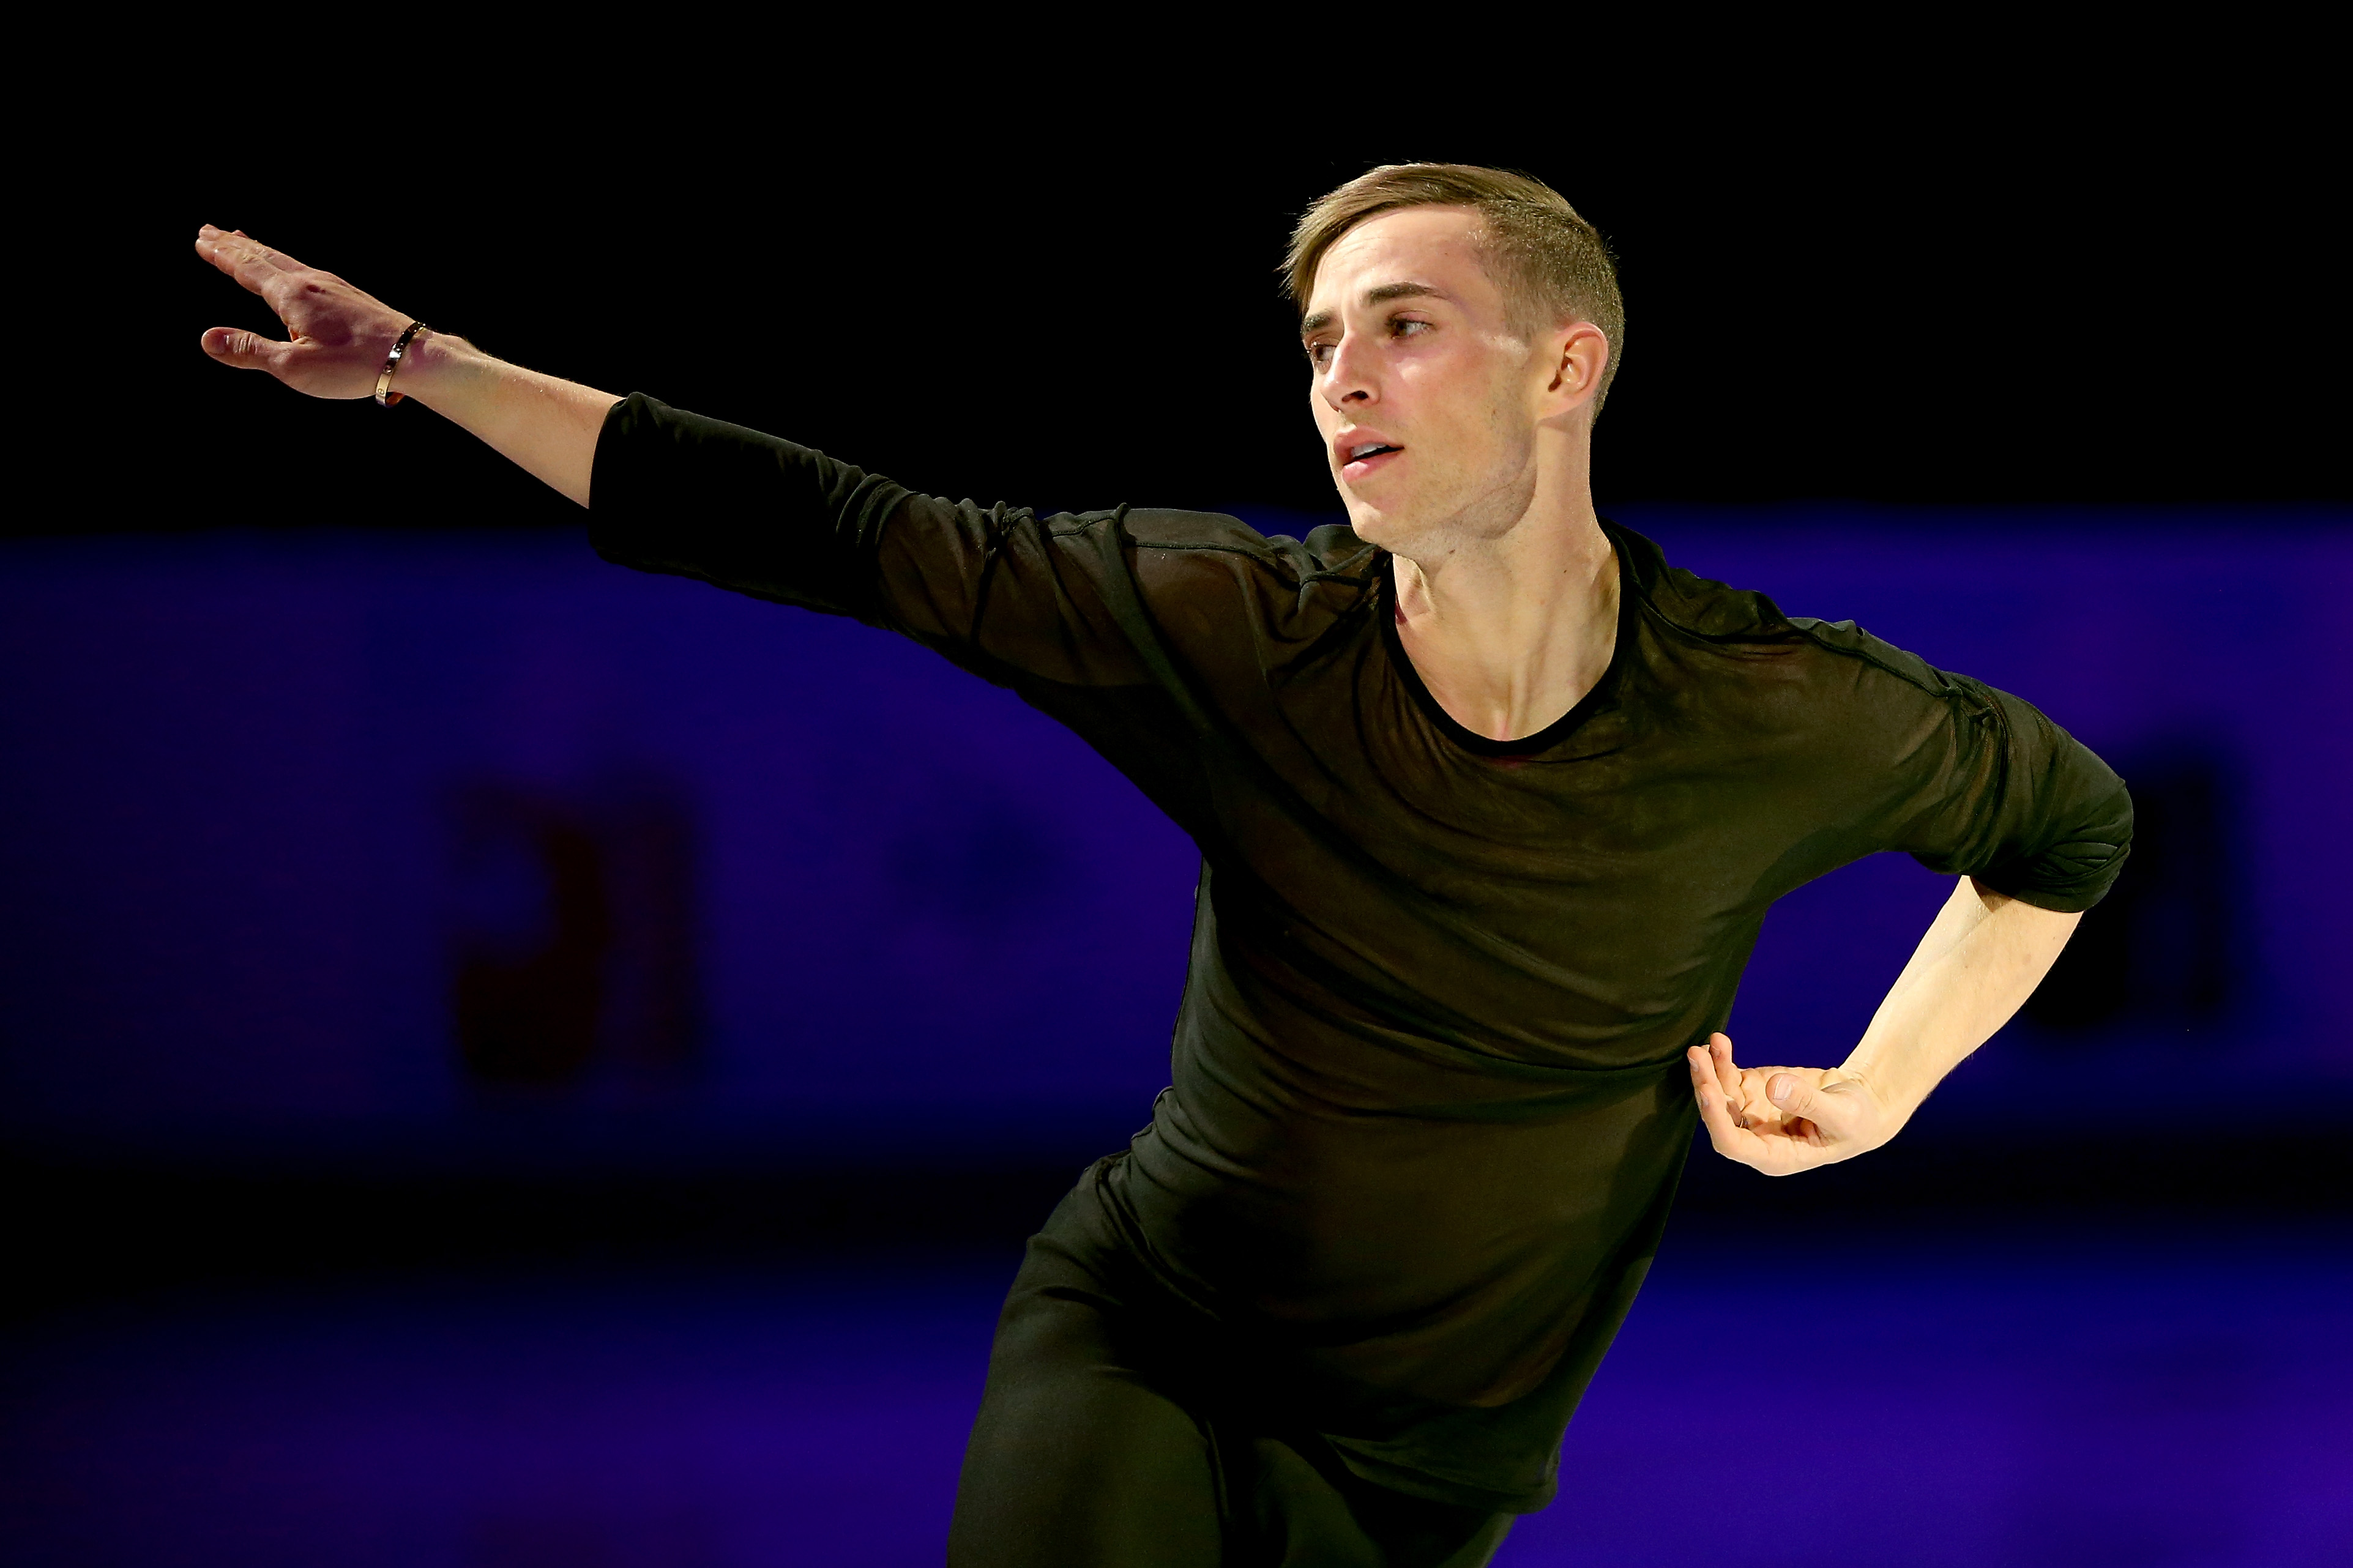 Adam Rippon skates in the Smucker's Skating Spectacular during the 2018 Prudential U.S. Figure Skating Championships at the SAP Center on January 7, 2018 in San Jose, California.